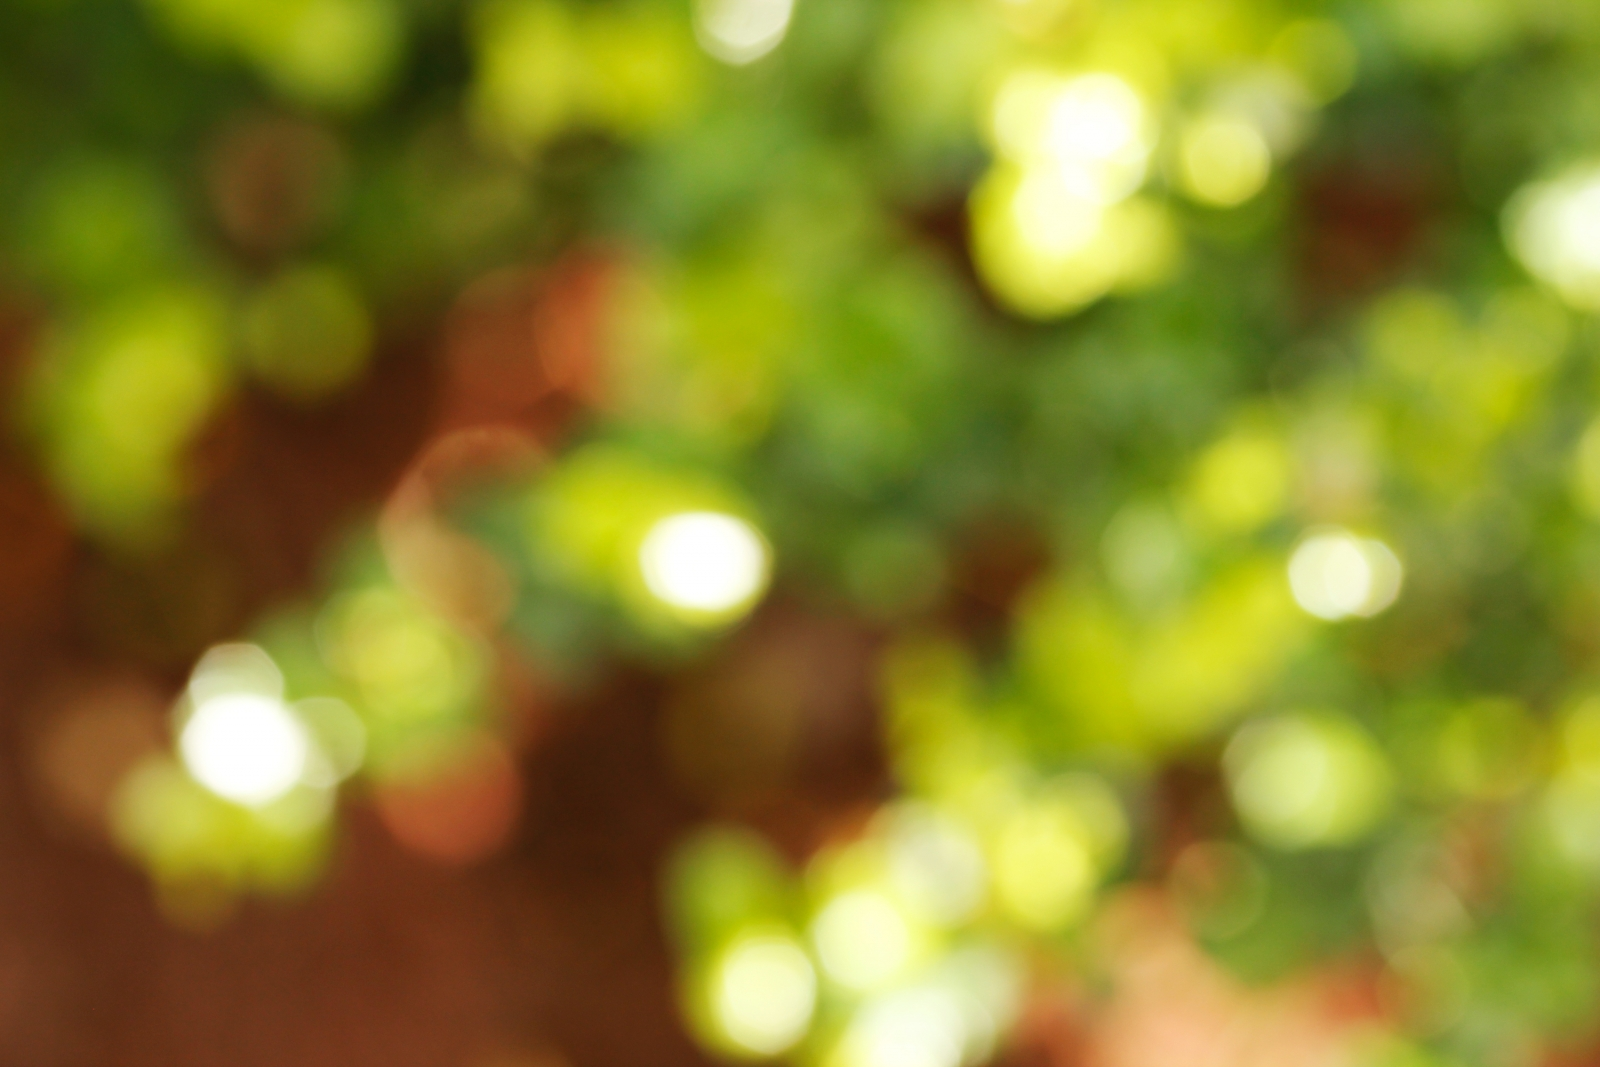 Free download Plants And Sunlight Background Blur With Bokeh